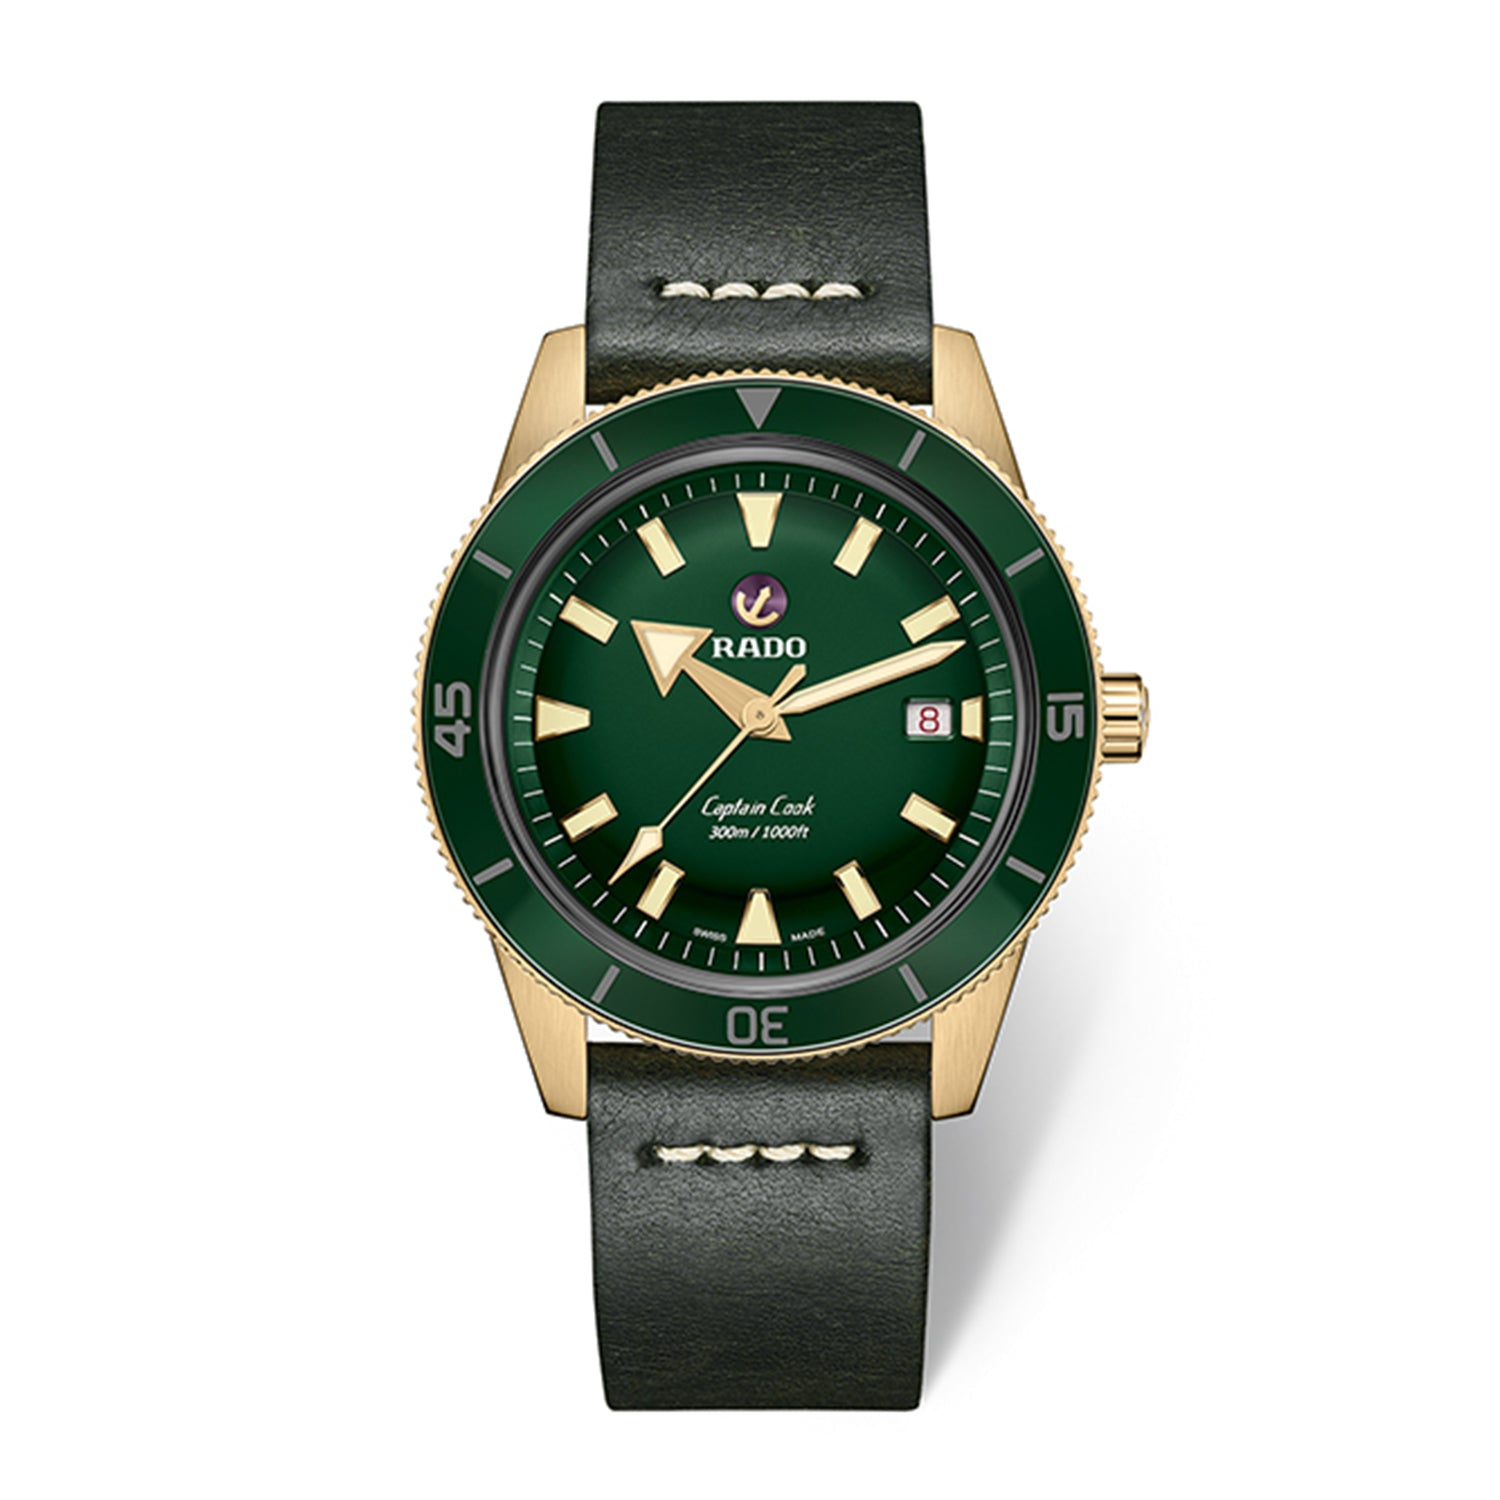 Rado Captain Cook Xlarge watch with Bronze Case, Green Dial with Leather Strap